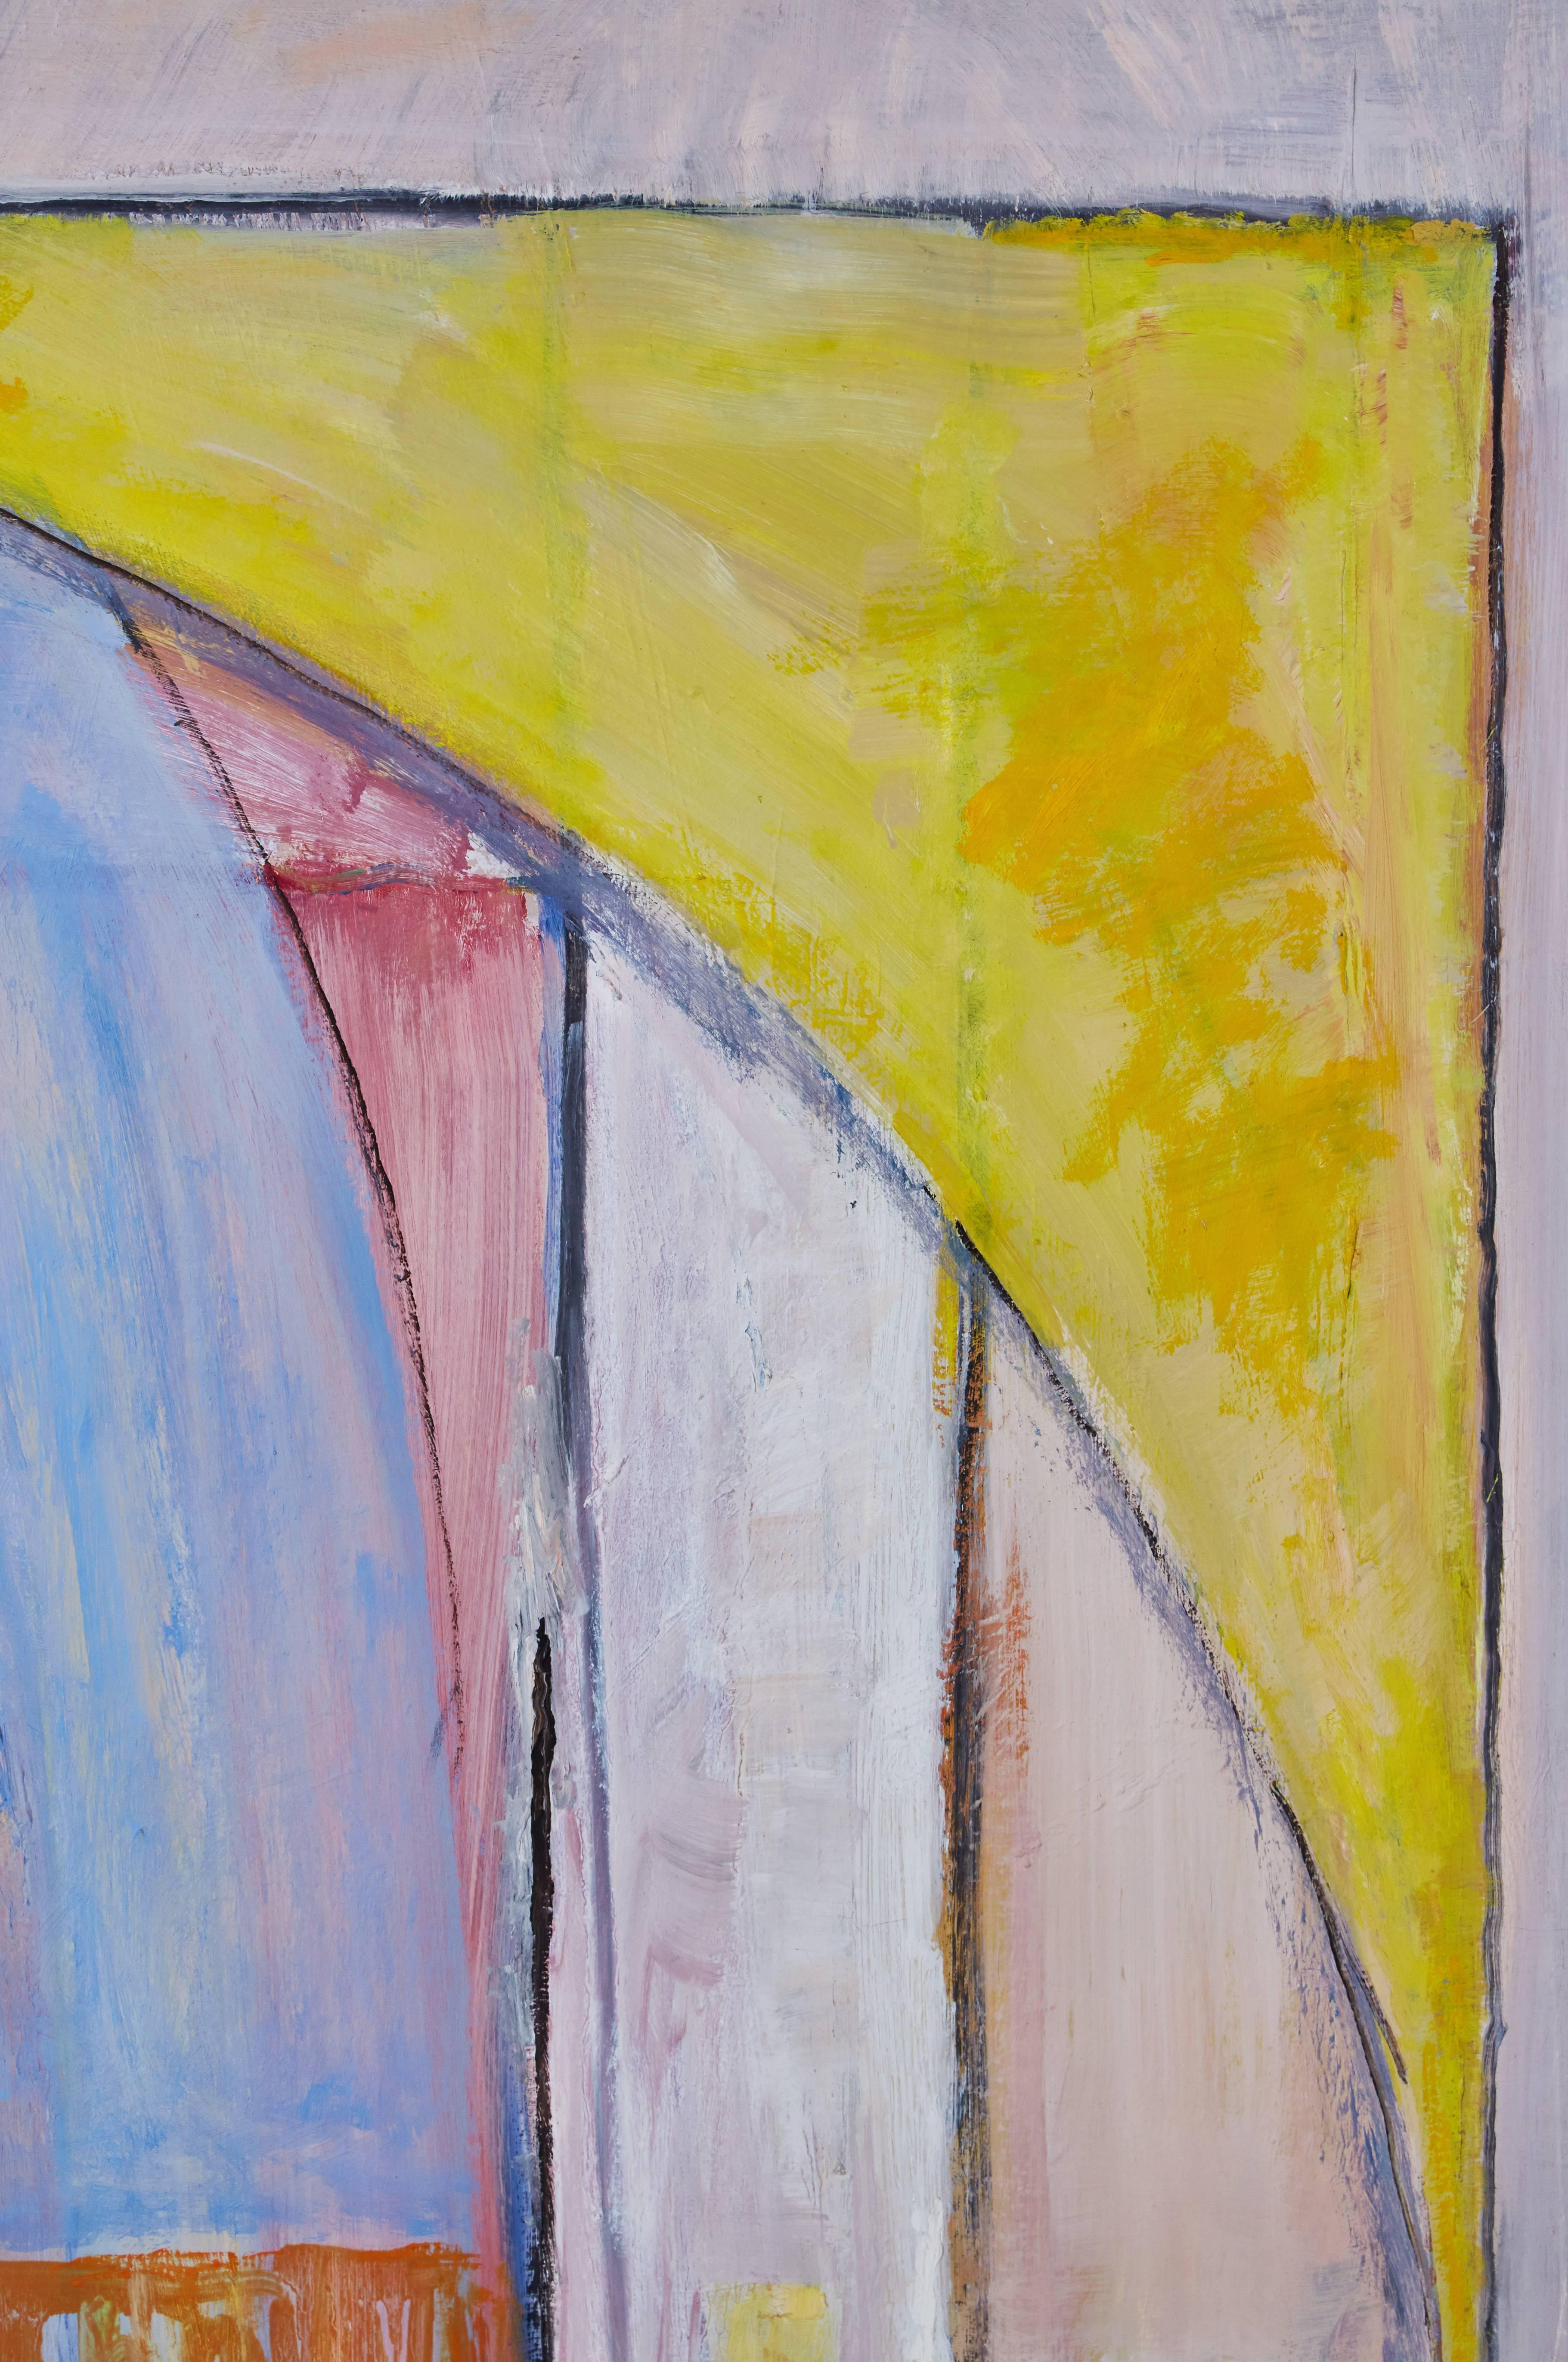 Signed, Abstract Oil Painting by David Sorensen For Sale at 1stdibs